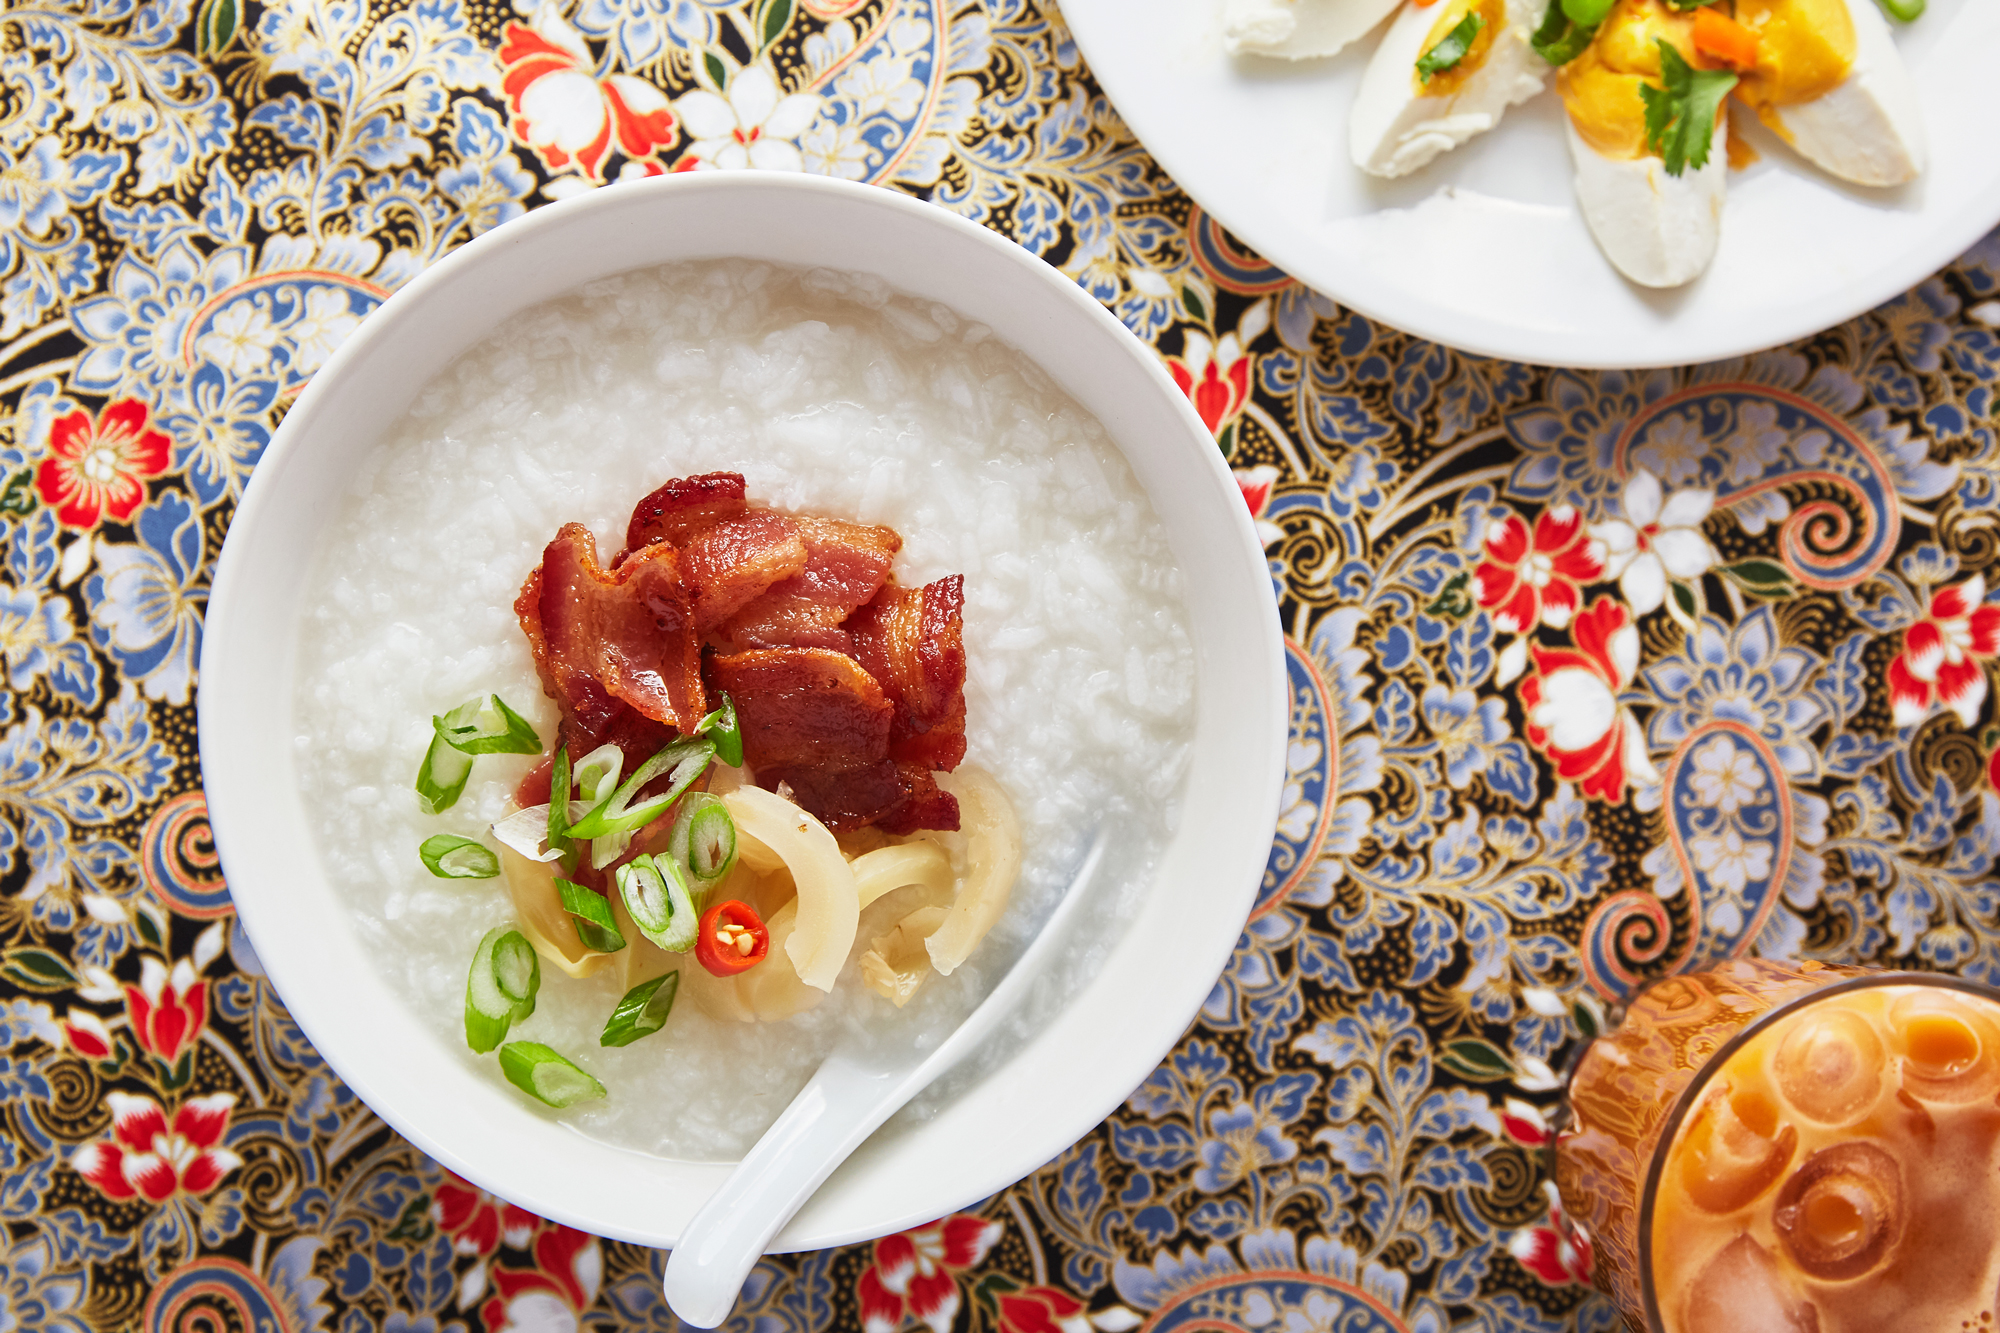 Kru Nid's Khao Tom (Thai Breakfast Porridge with Bacon)